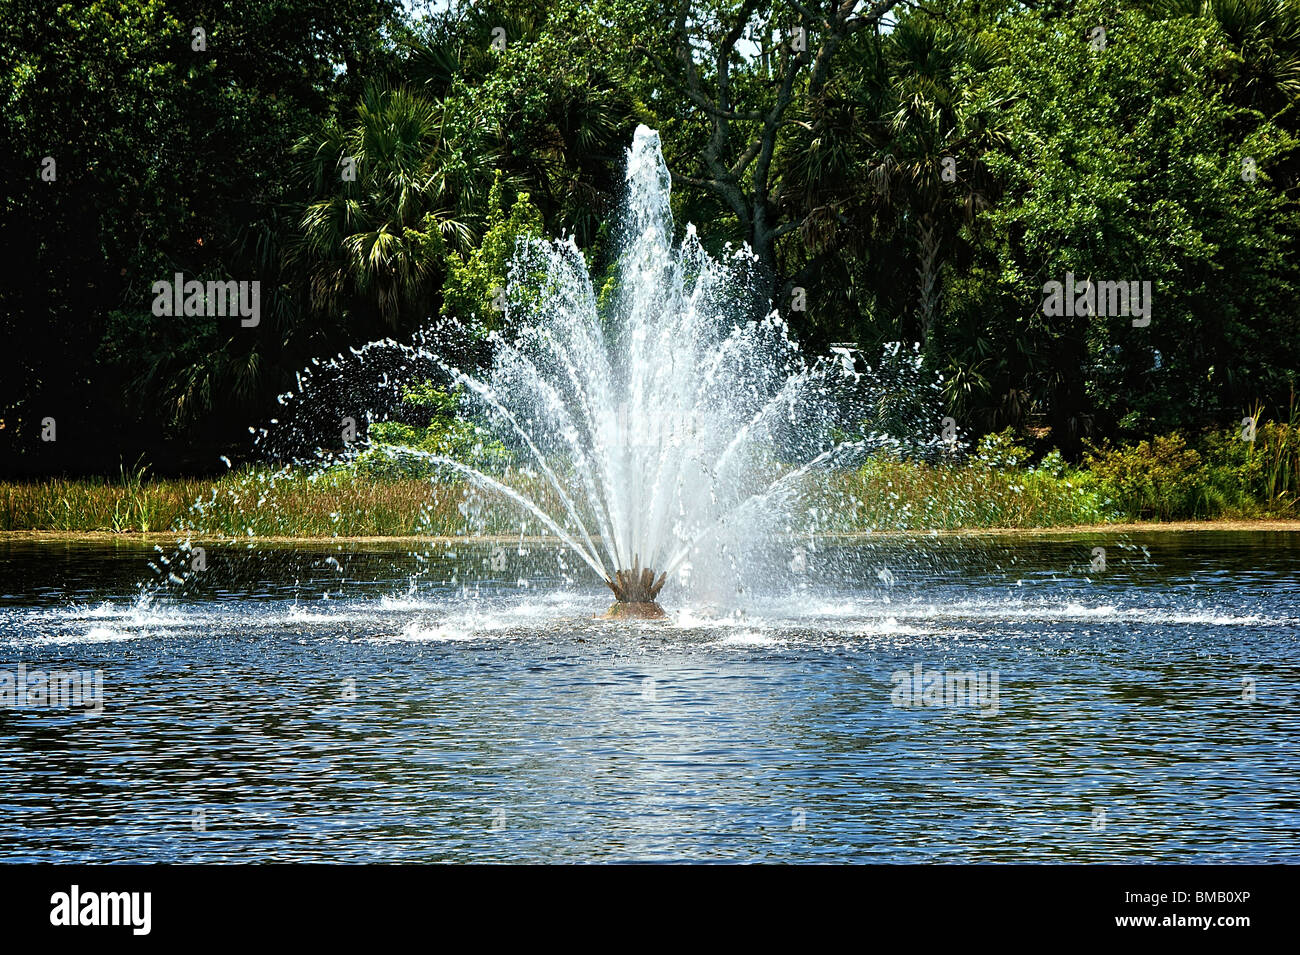 beautiful fan shaped water fountain in the middle of a man made pond on a sunny day in bonita springs florida - Stock Image